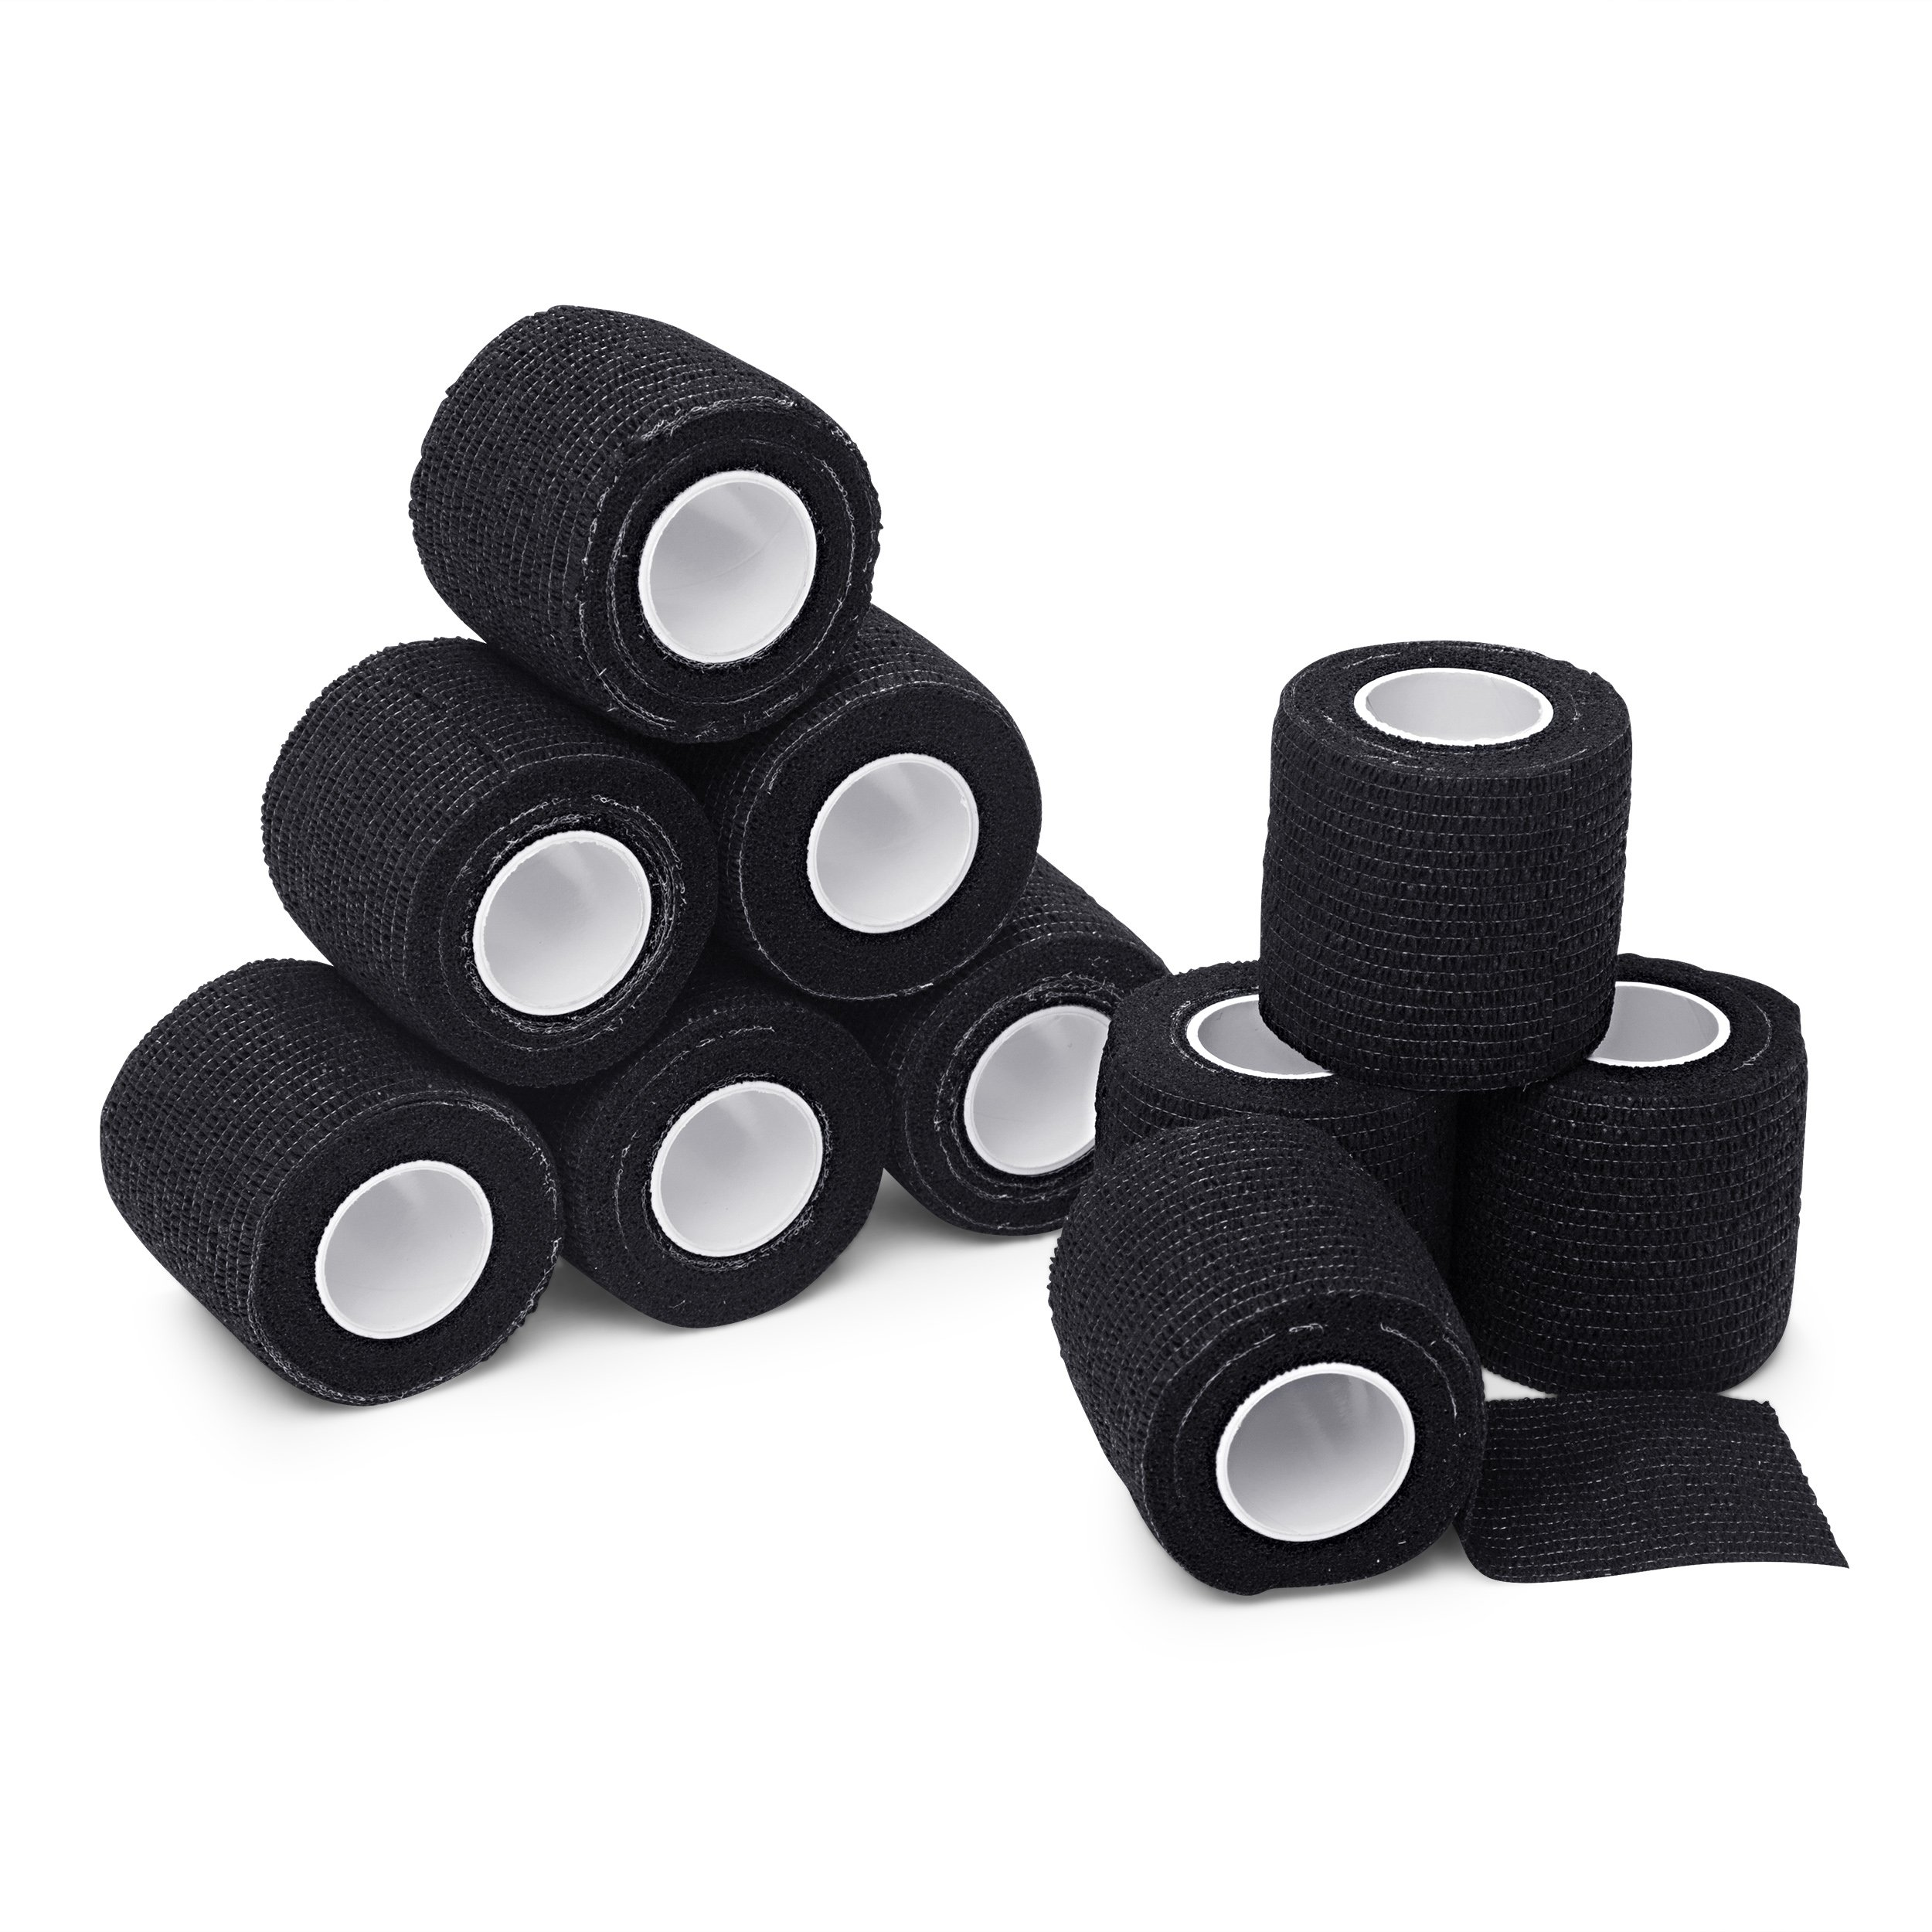 "10-Pack, 2"" x 5 Yards, Self-Adherent Cohesive Tape, Strong Sports Tape for Wrist, Ankle Sprains & Swelling, Self-Adhesive Bandage Rolls, FDA Approved, Black Color, Self Adhesive Tape, Athletic Tape"